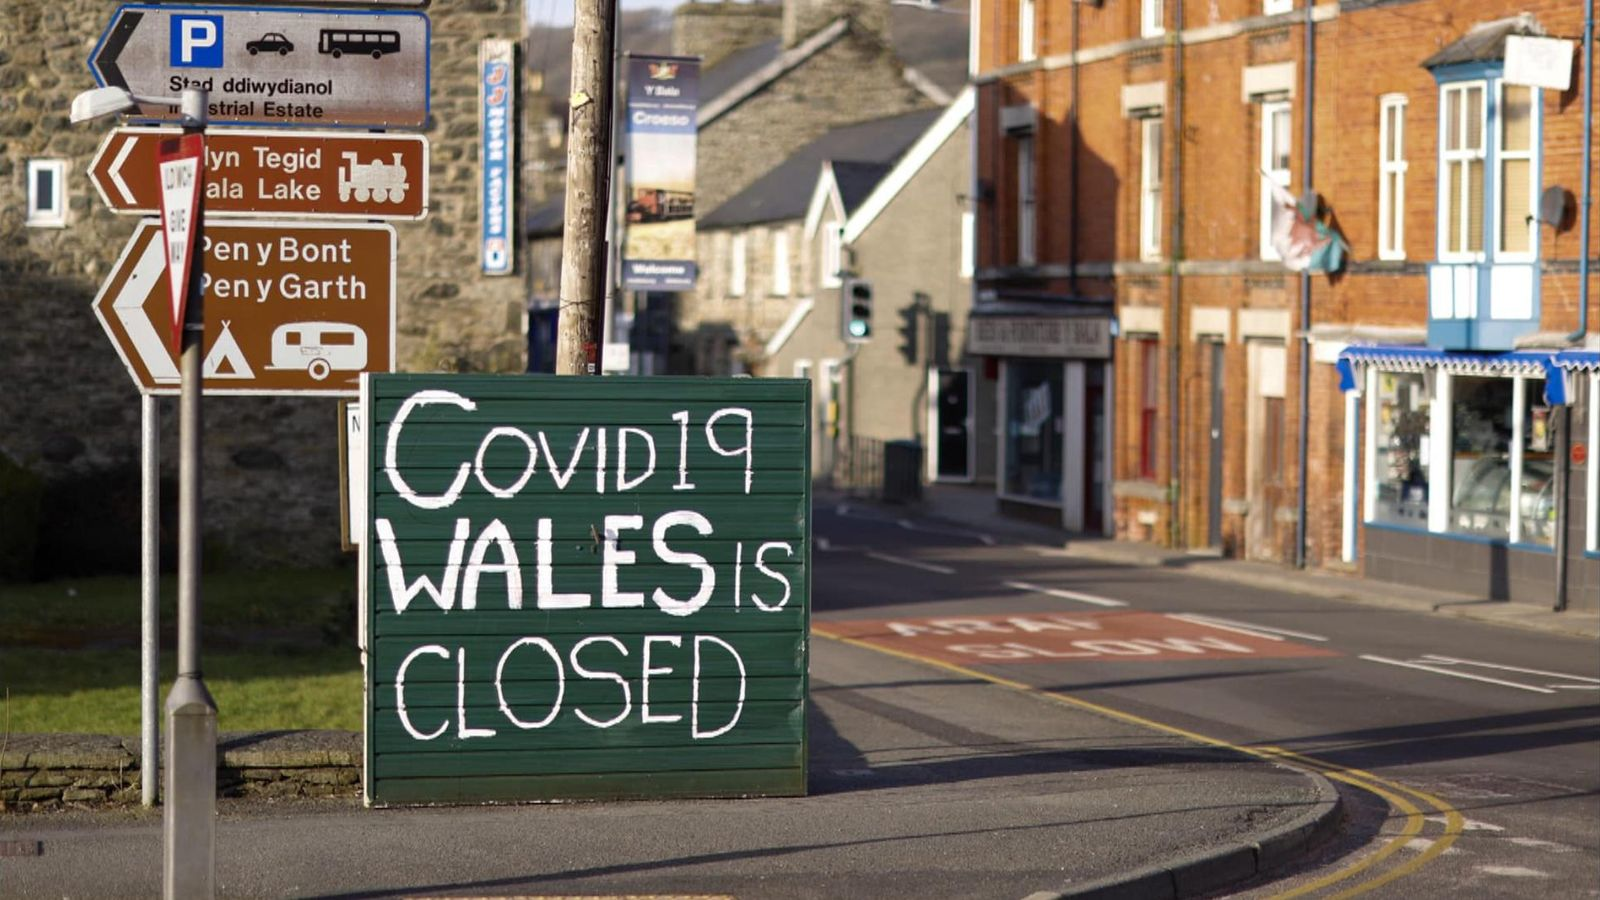 Coronavirus: Plea for restraint as rural areas inundated with visitors escaping COVID-19